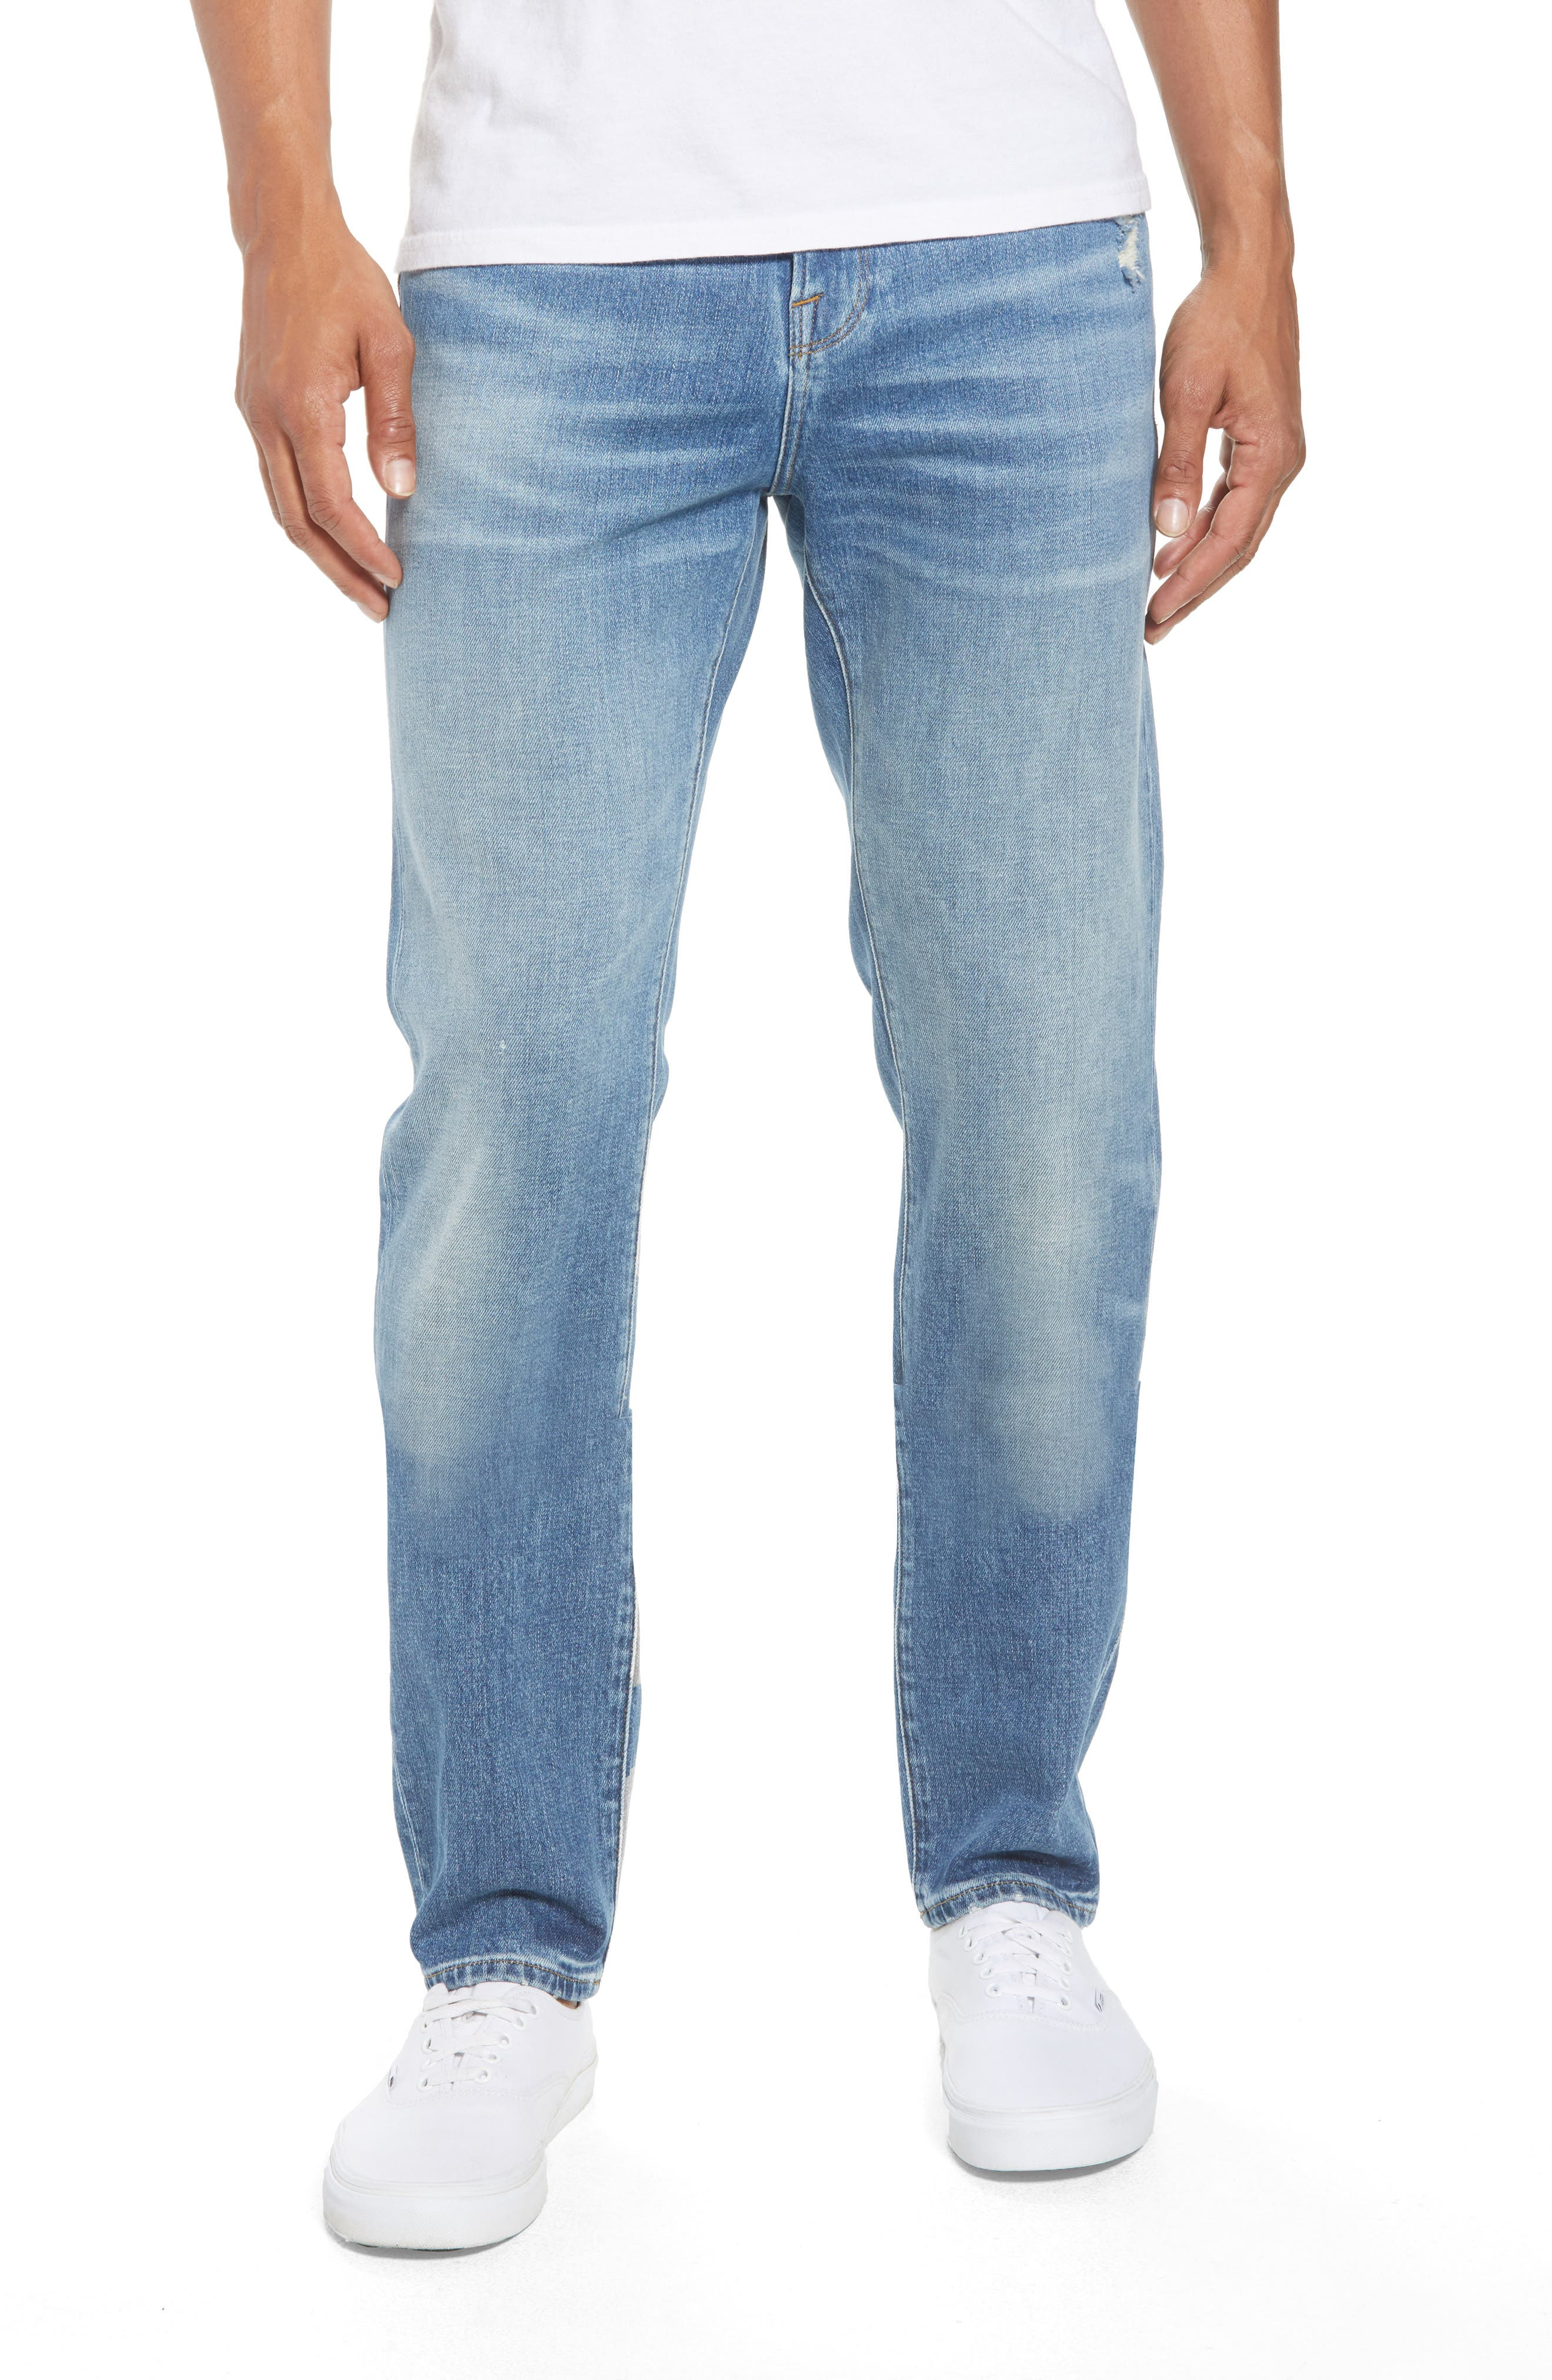 L'Homme Skinny Jeans,                             Main thumbnail 1, color,                             PICKNEY